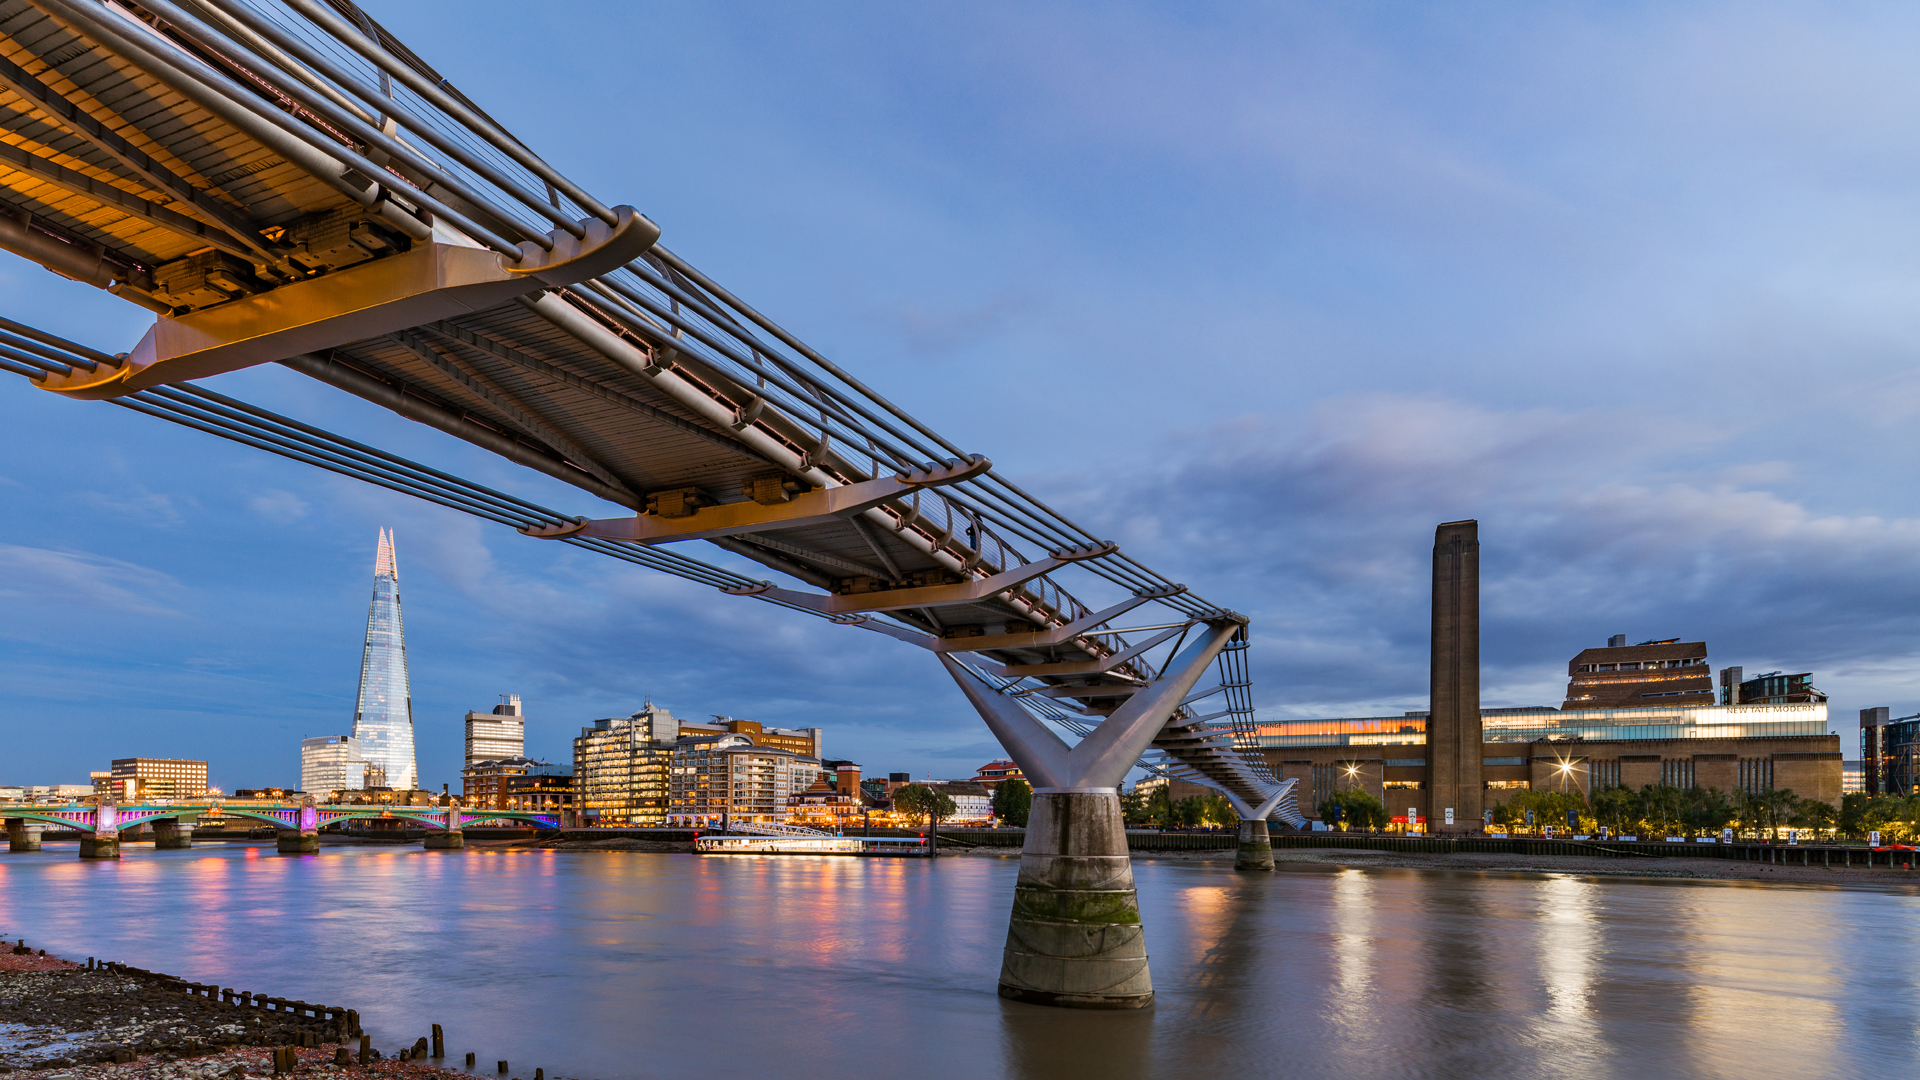 The Millenium Bridge reaching across the Thames to the Tate Modern at dusk with The Shard in the background